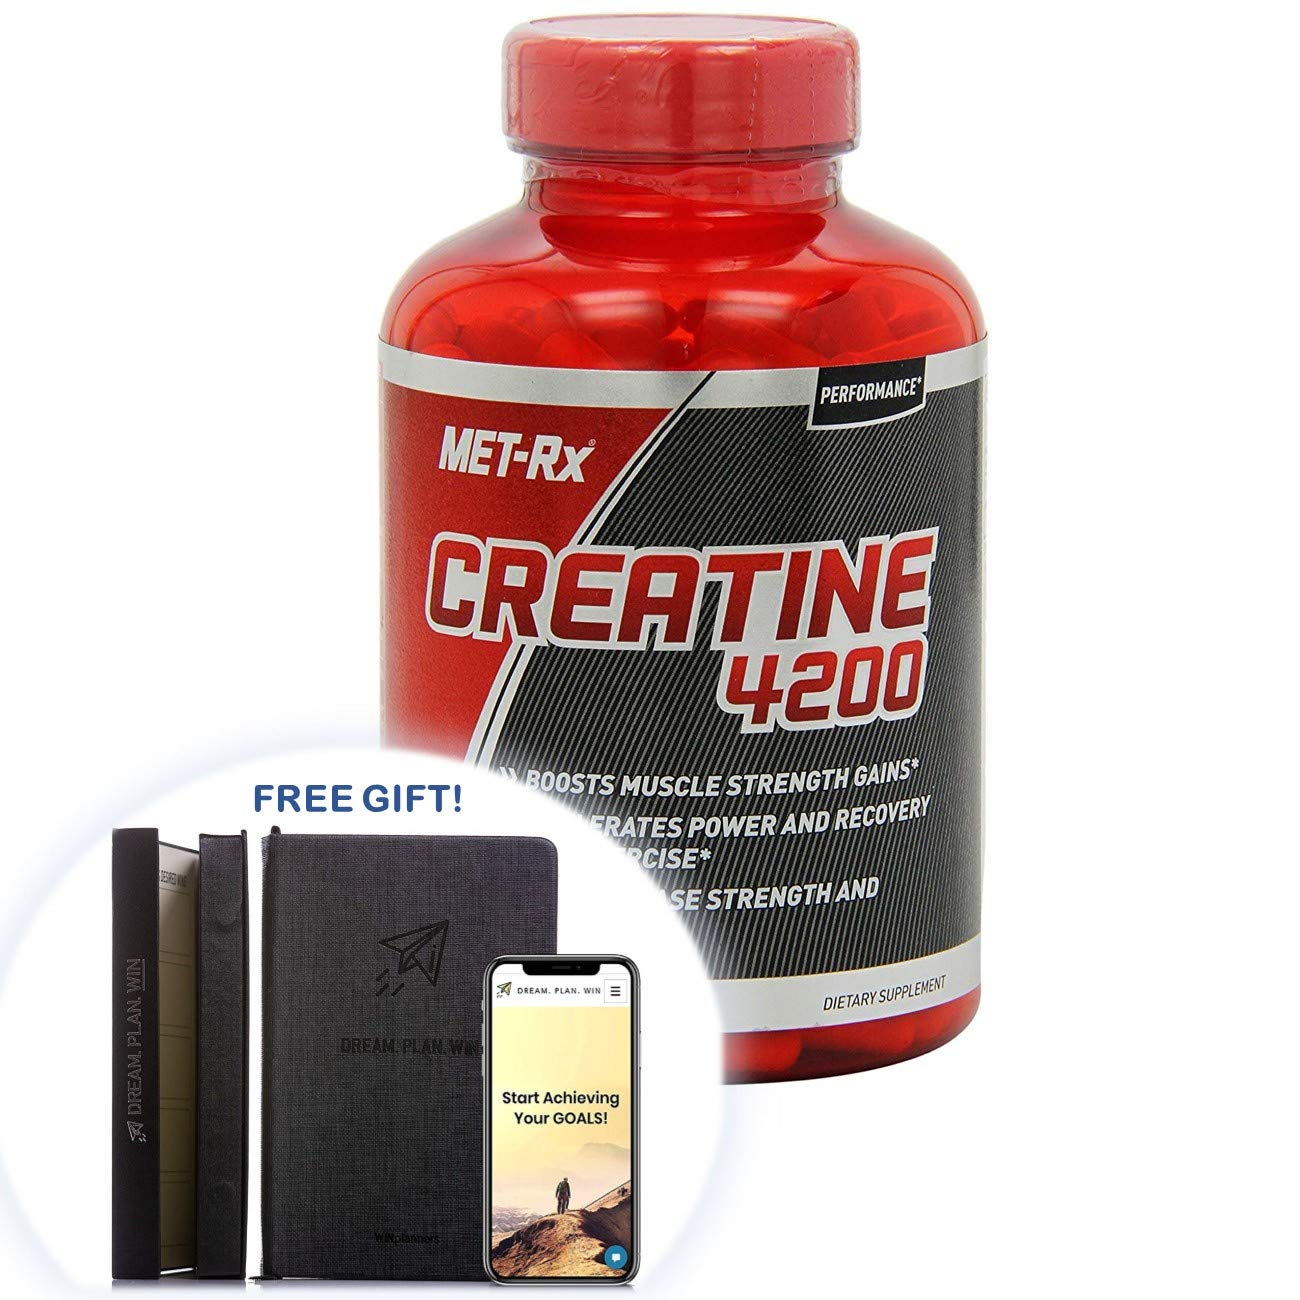 MET-Rx Creatine 4200 Supplement, Supports Muscles Pre and Post Workout, 715 Capsules + Free Gift - Productivity Planner - Attain Your Dreams! (715 Count)